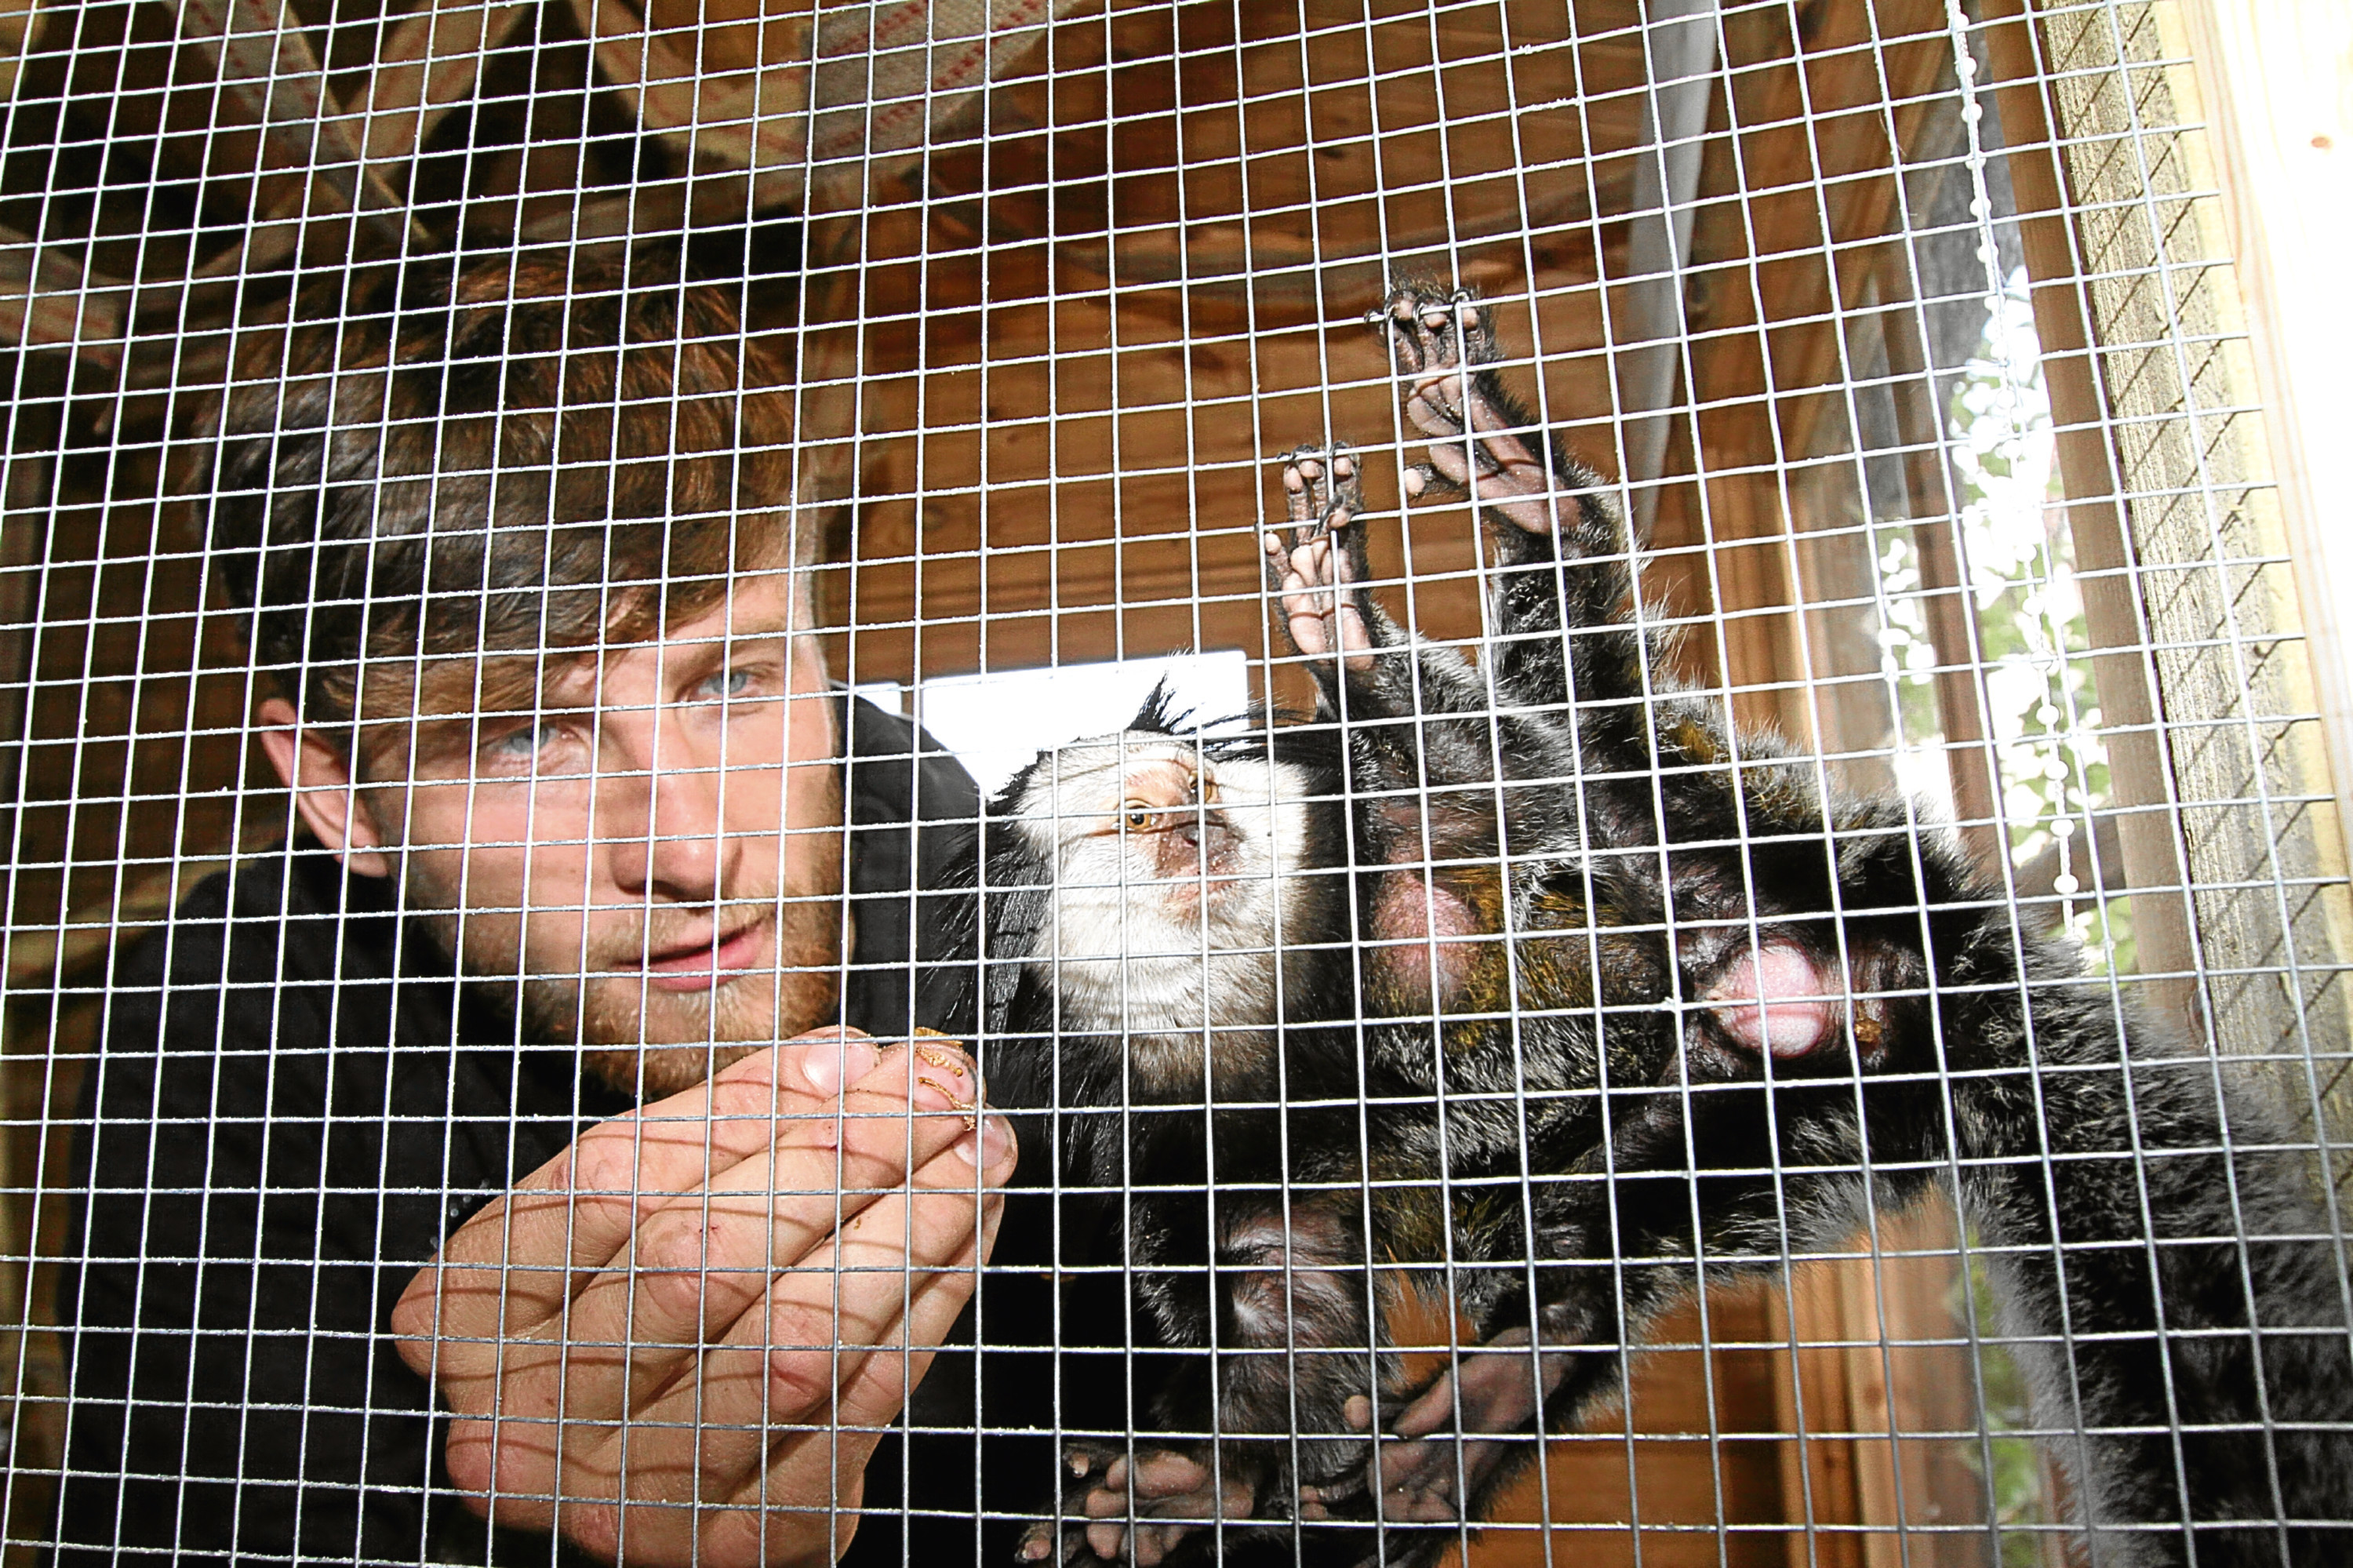 Ryan Dolan feeding his pet monkey George in his enclosure at his Fintry home